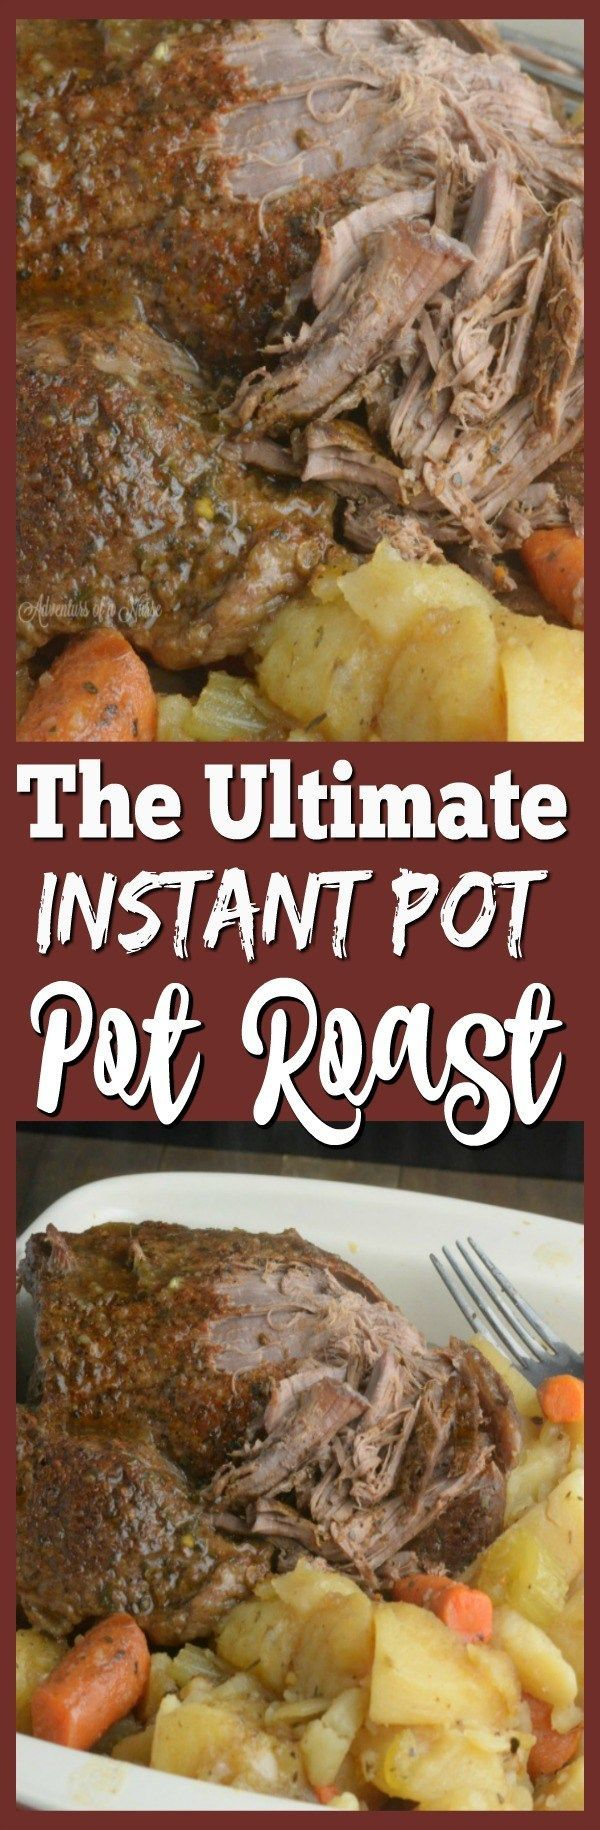 Instant Pot Ultimate Pot roast